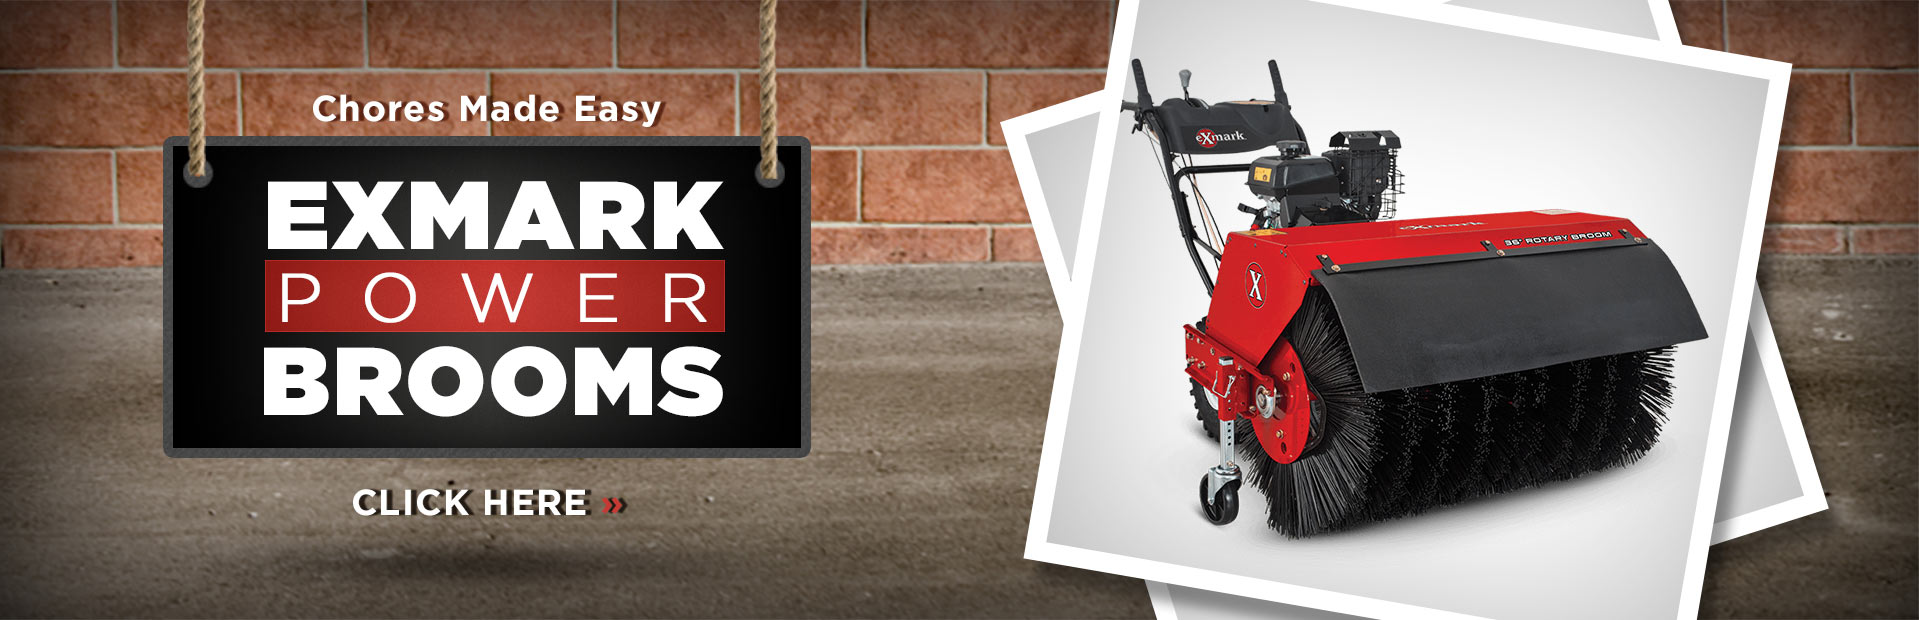 Click here to view our selection of Exmark power brooms!